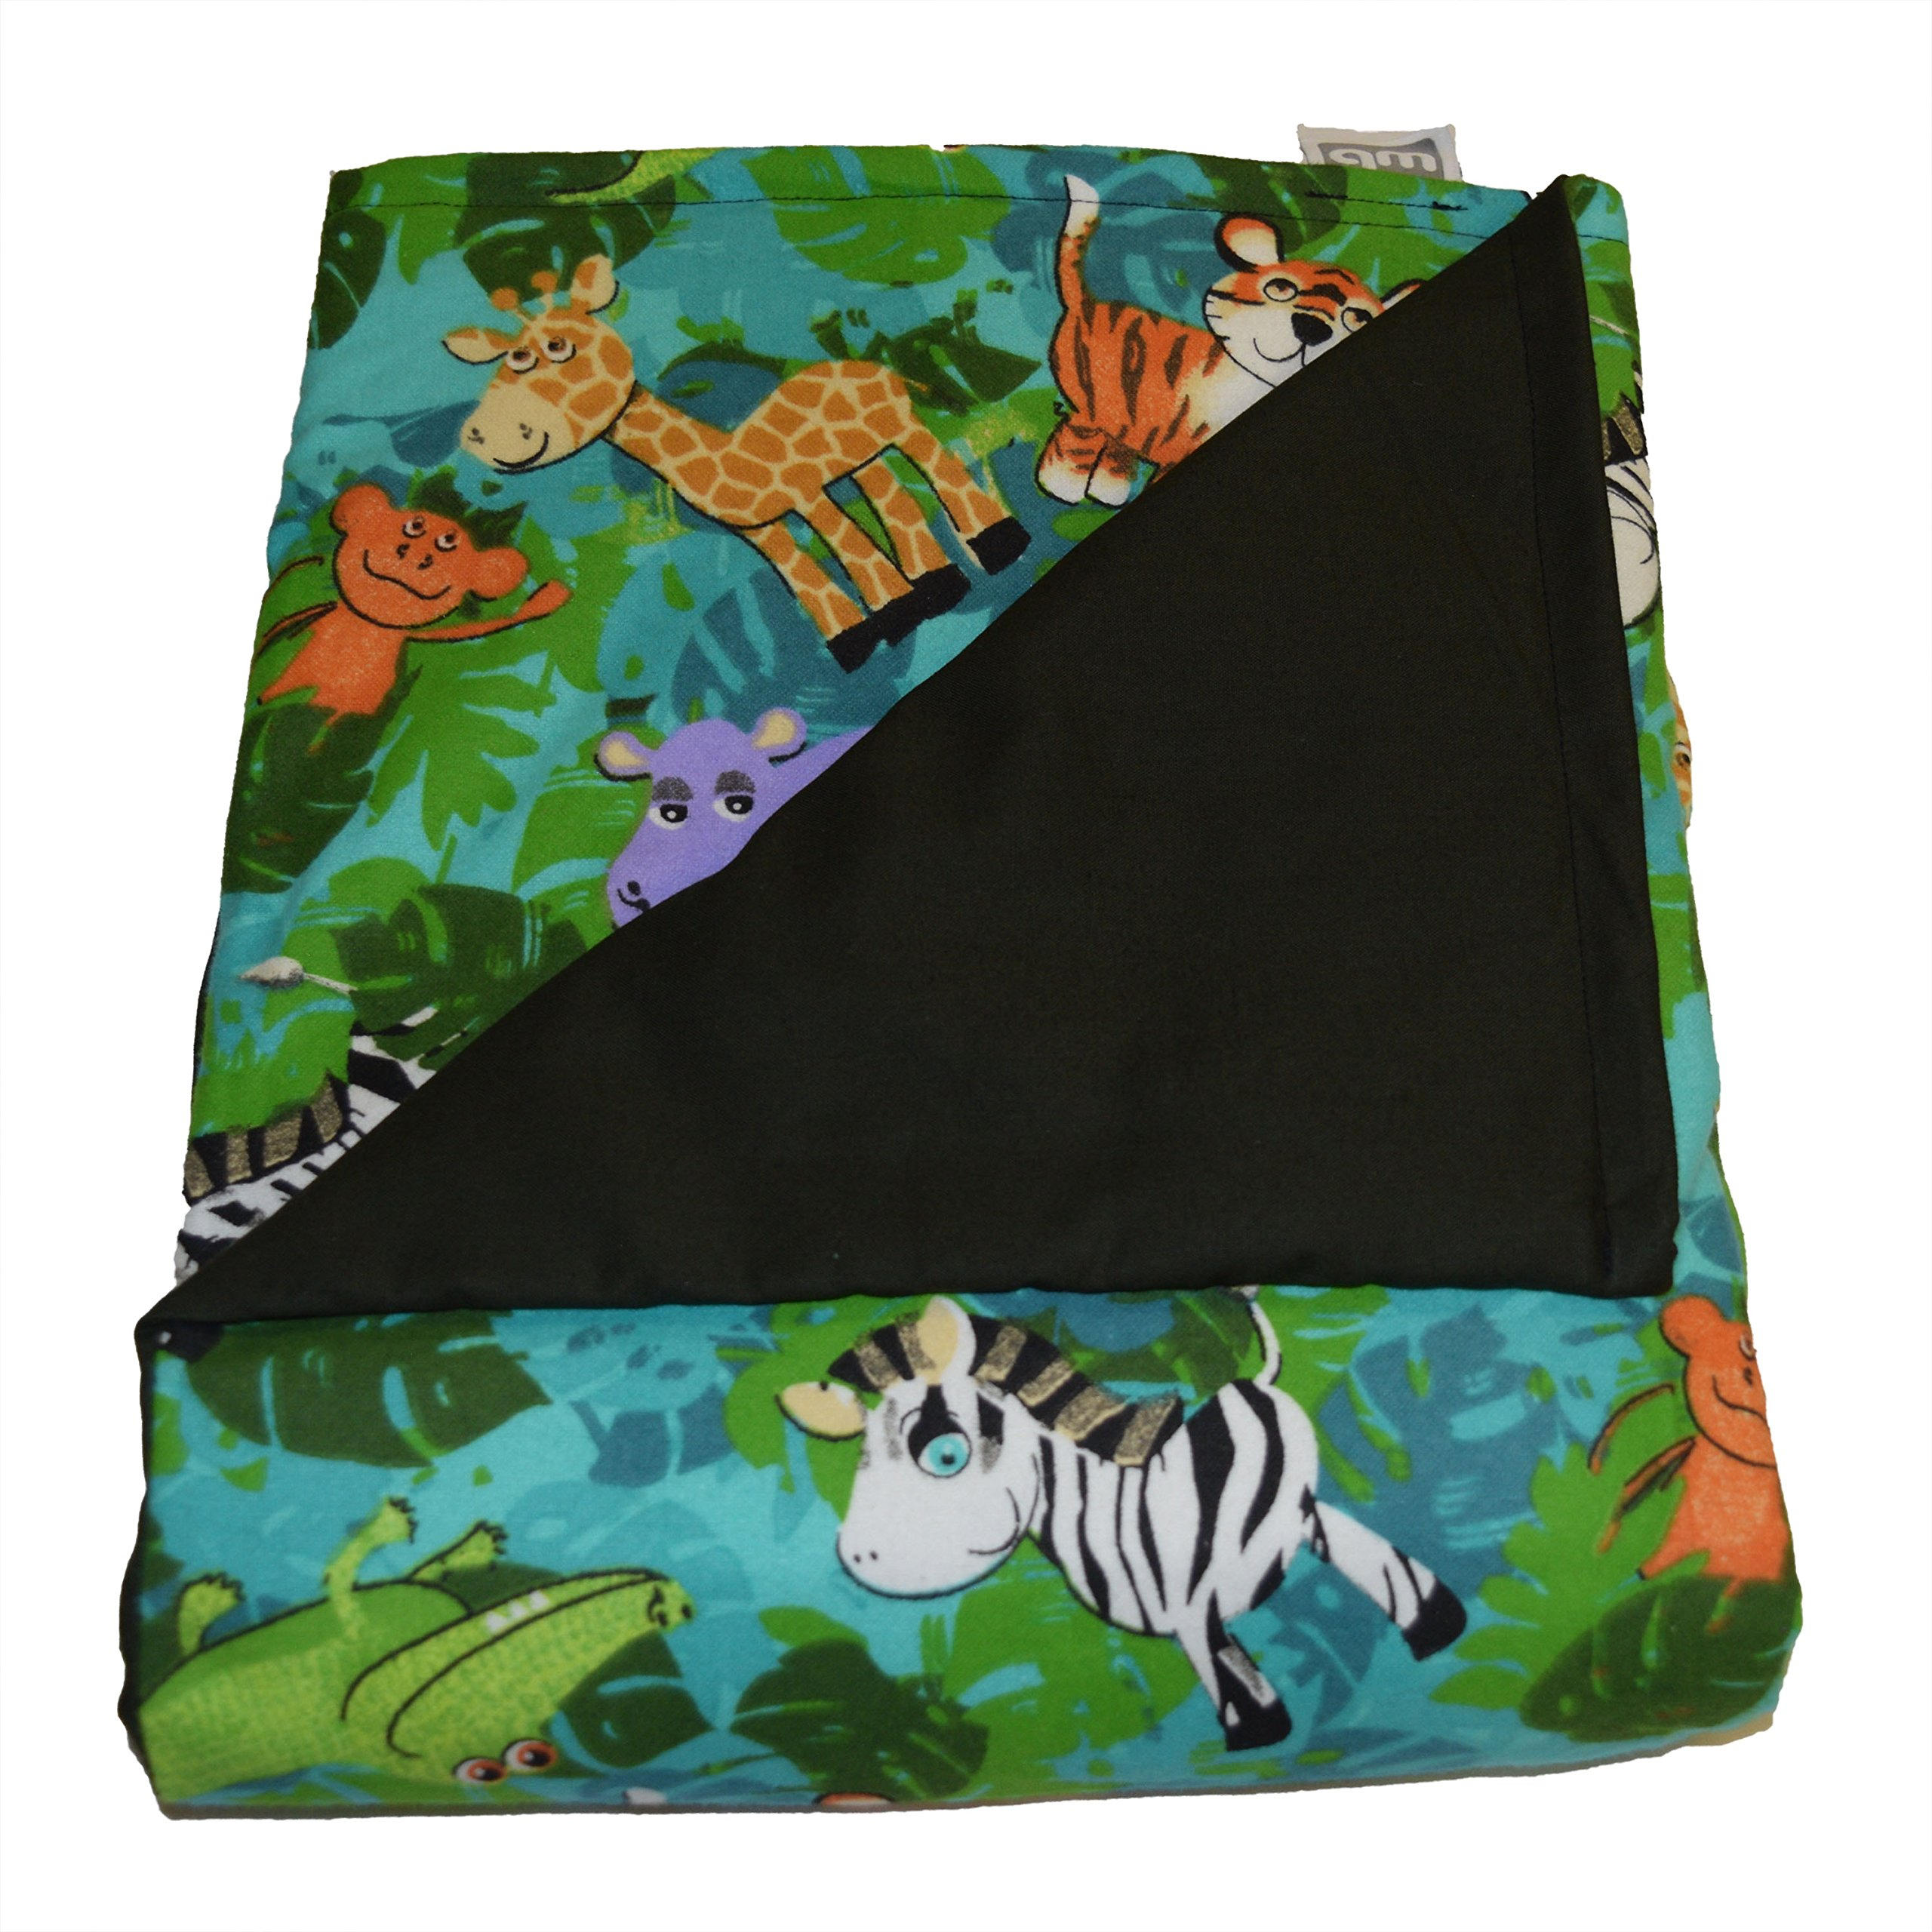 WEIGHTED BLANKETS PLUS LLC - MADE IN AMERICA - CHILD DELUXE SMALL WEIGHTED BLANKET - JUNGLE - COTTON/FLANNEL (52'' L x 40'' W) 6lb MEDIUM PRESSURE.